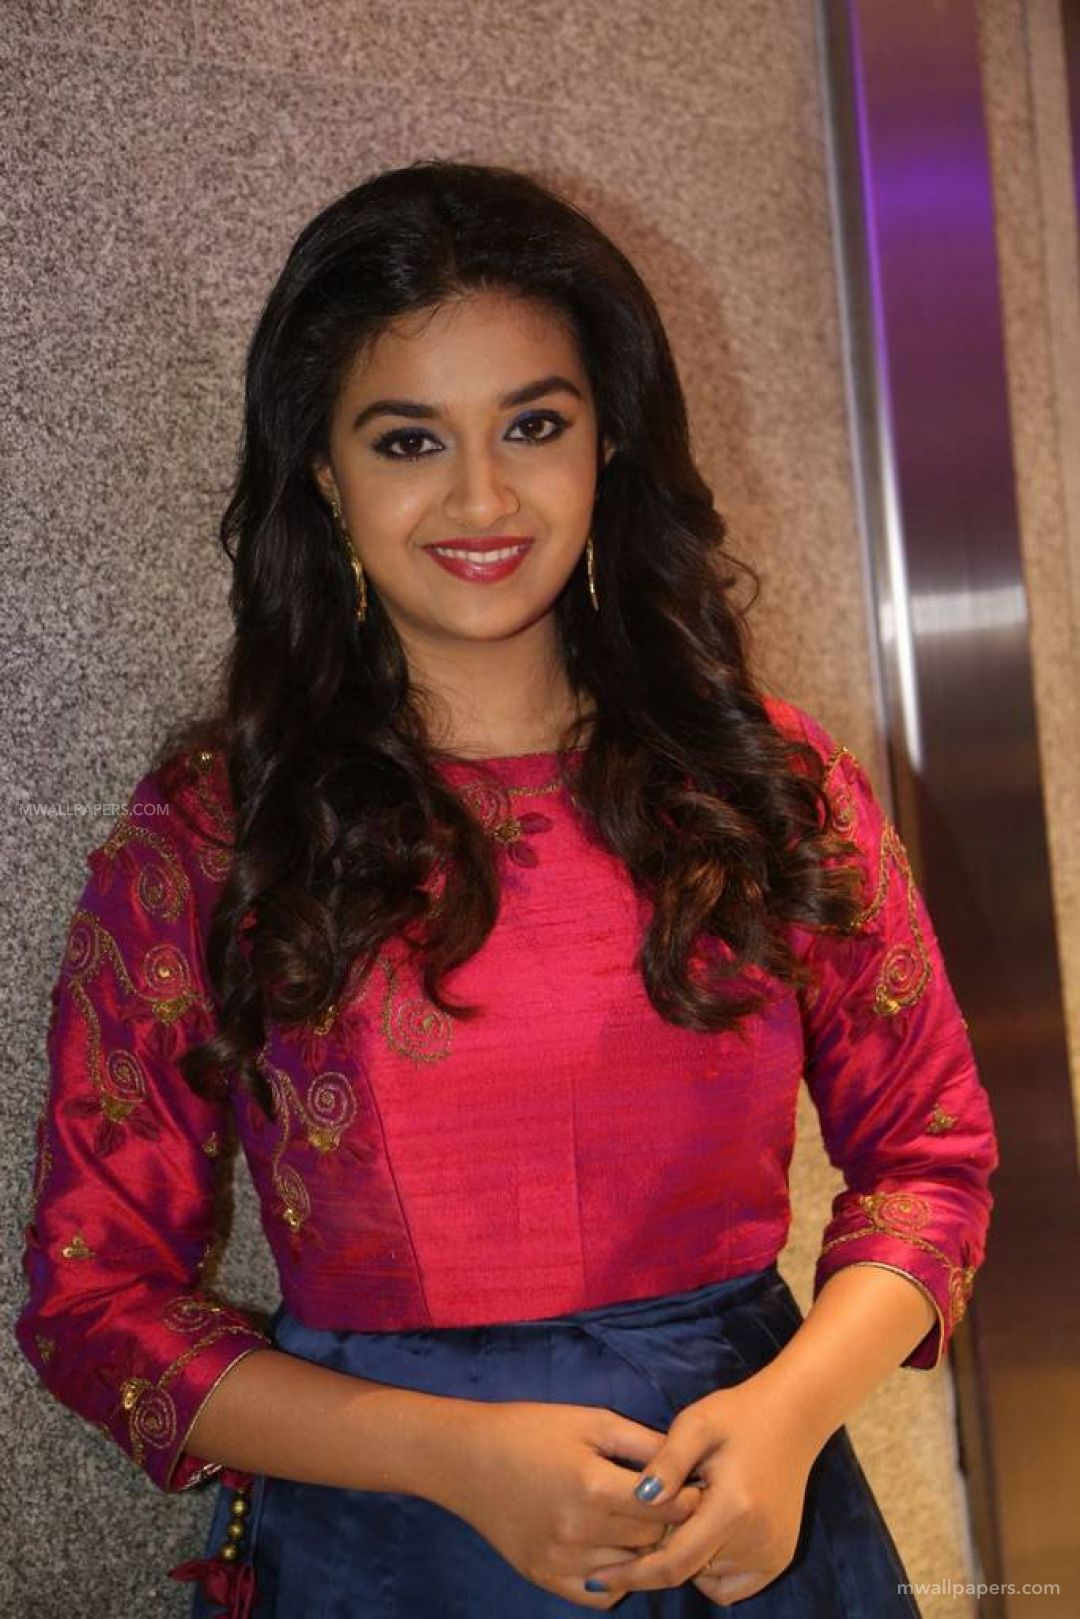 Keerthy Suresh HD Wallpapers (Desktop Background / Android / iPhone) (1080p, 4k) (58370) - Keerthy Suresh